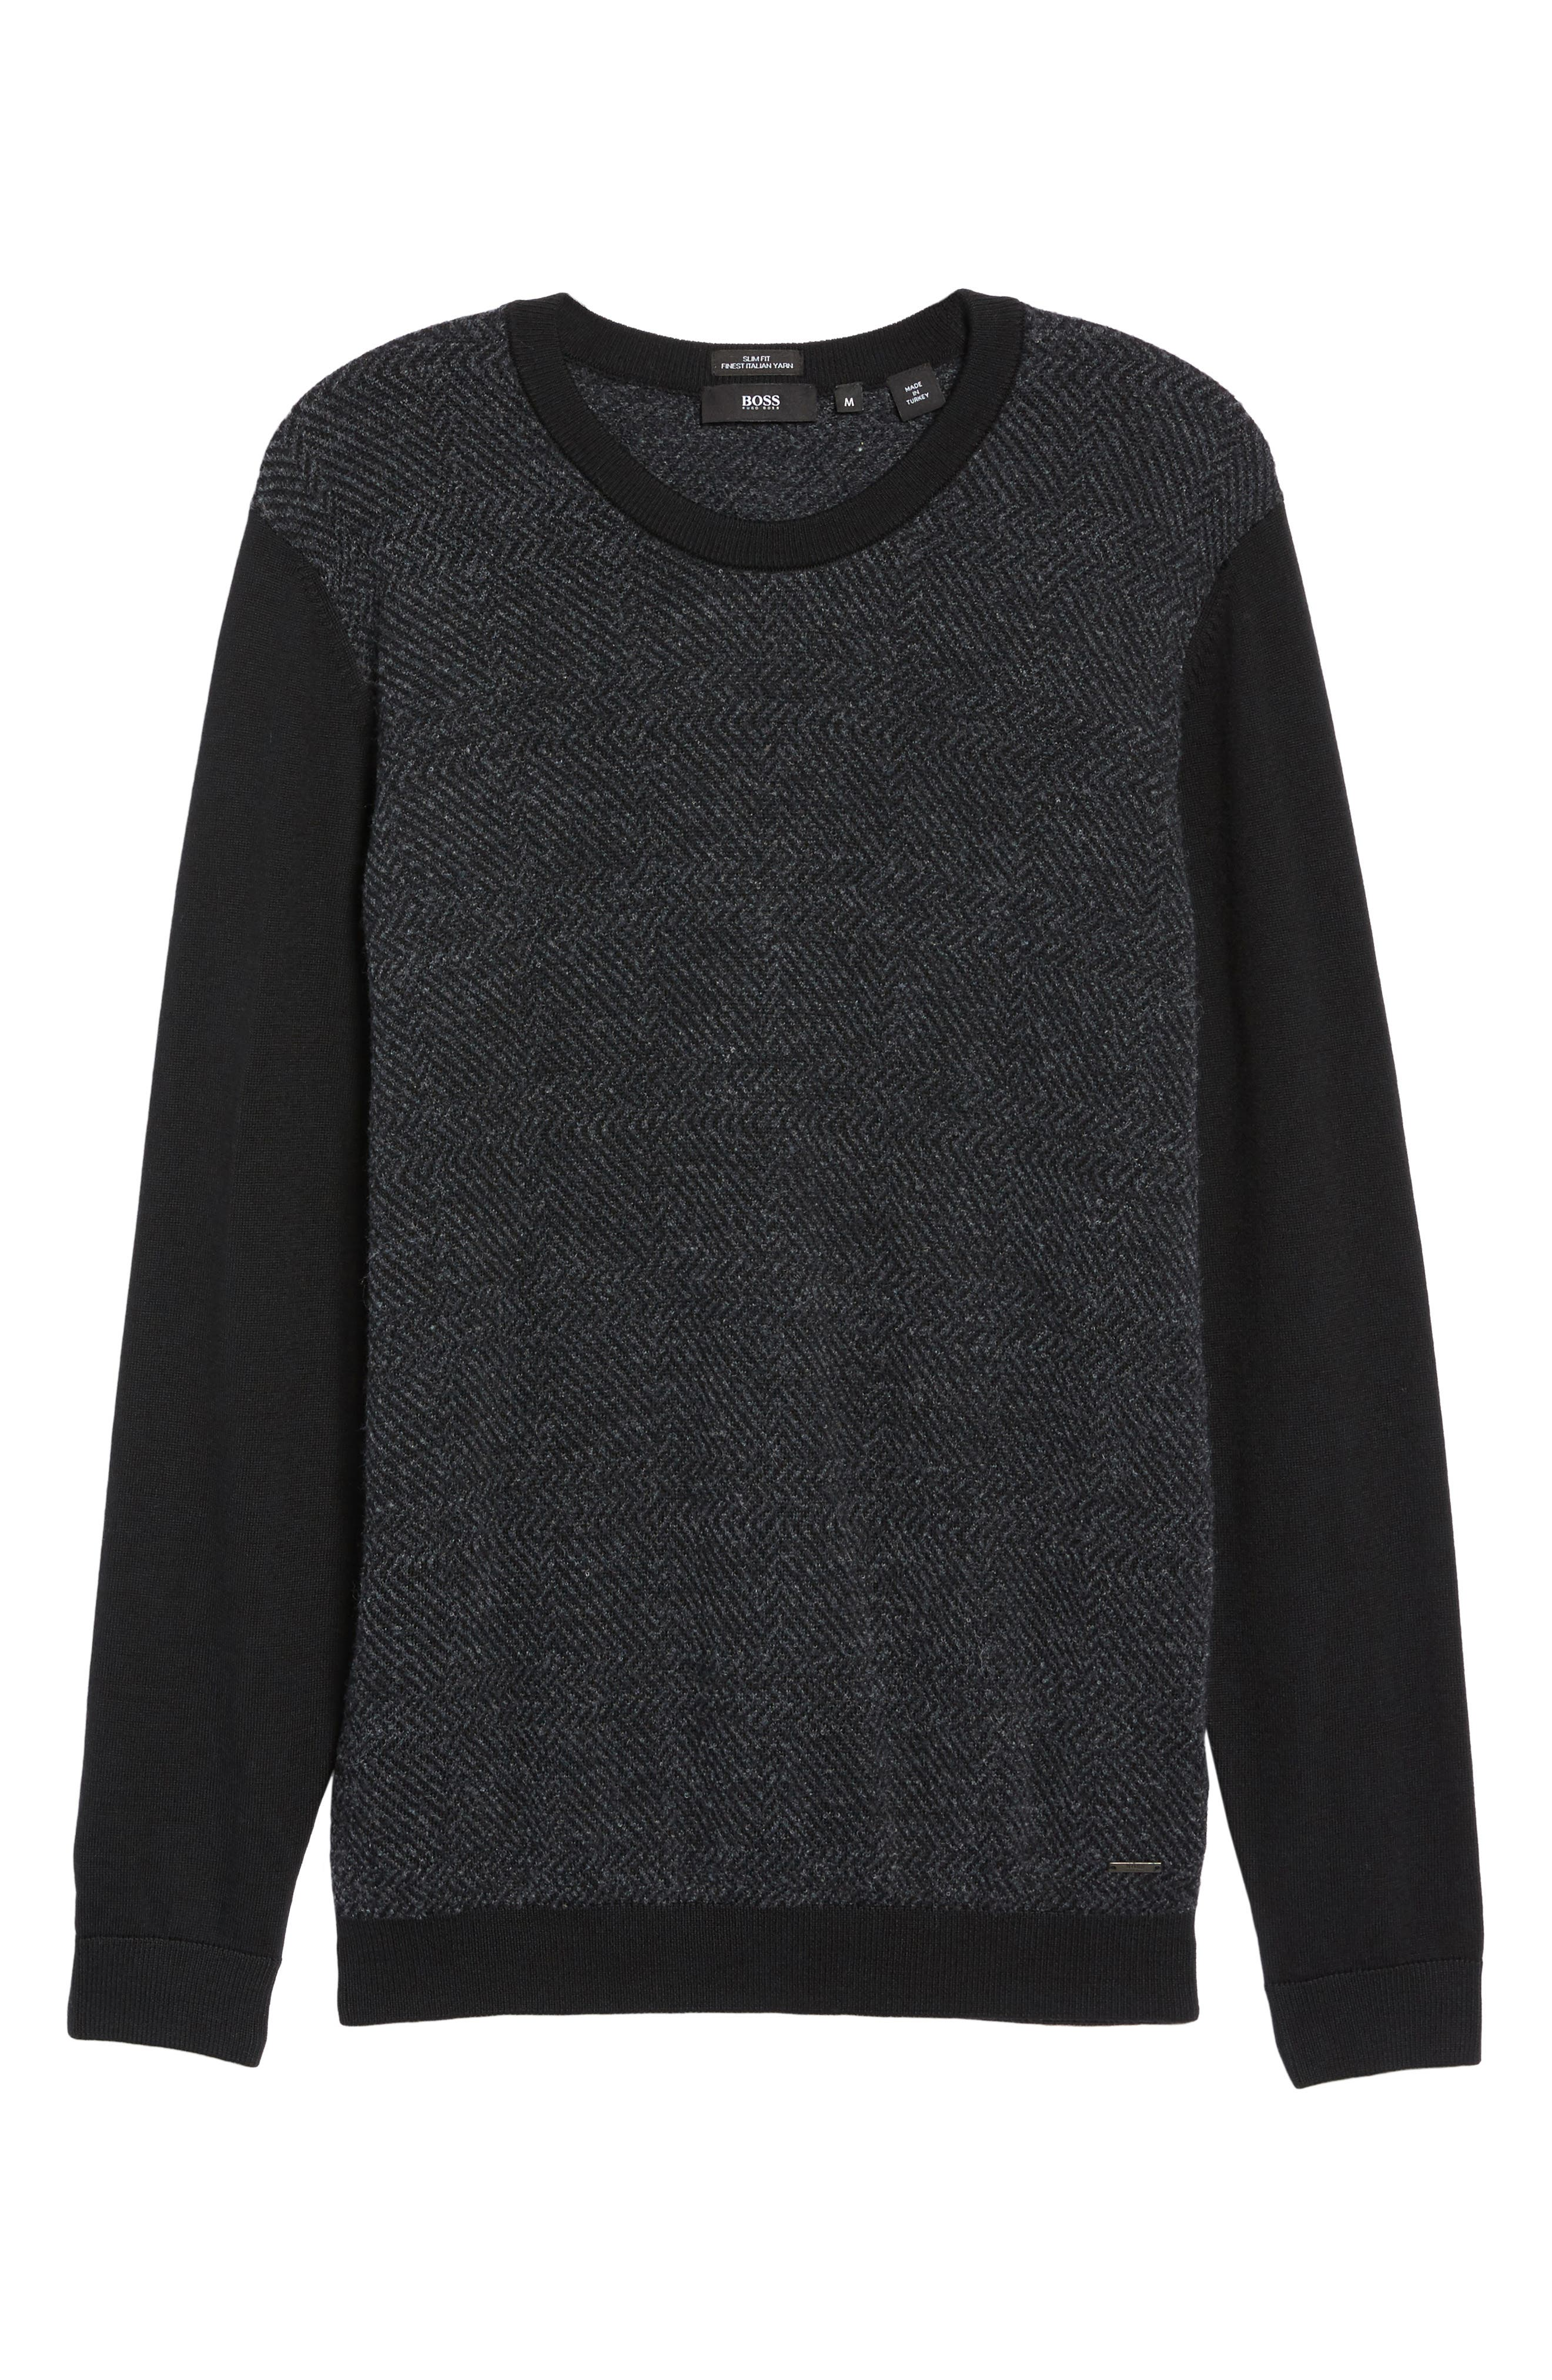 Notto Wool Blend Sweater,                             Alternate thumbnail 6, color,                             061